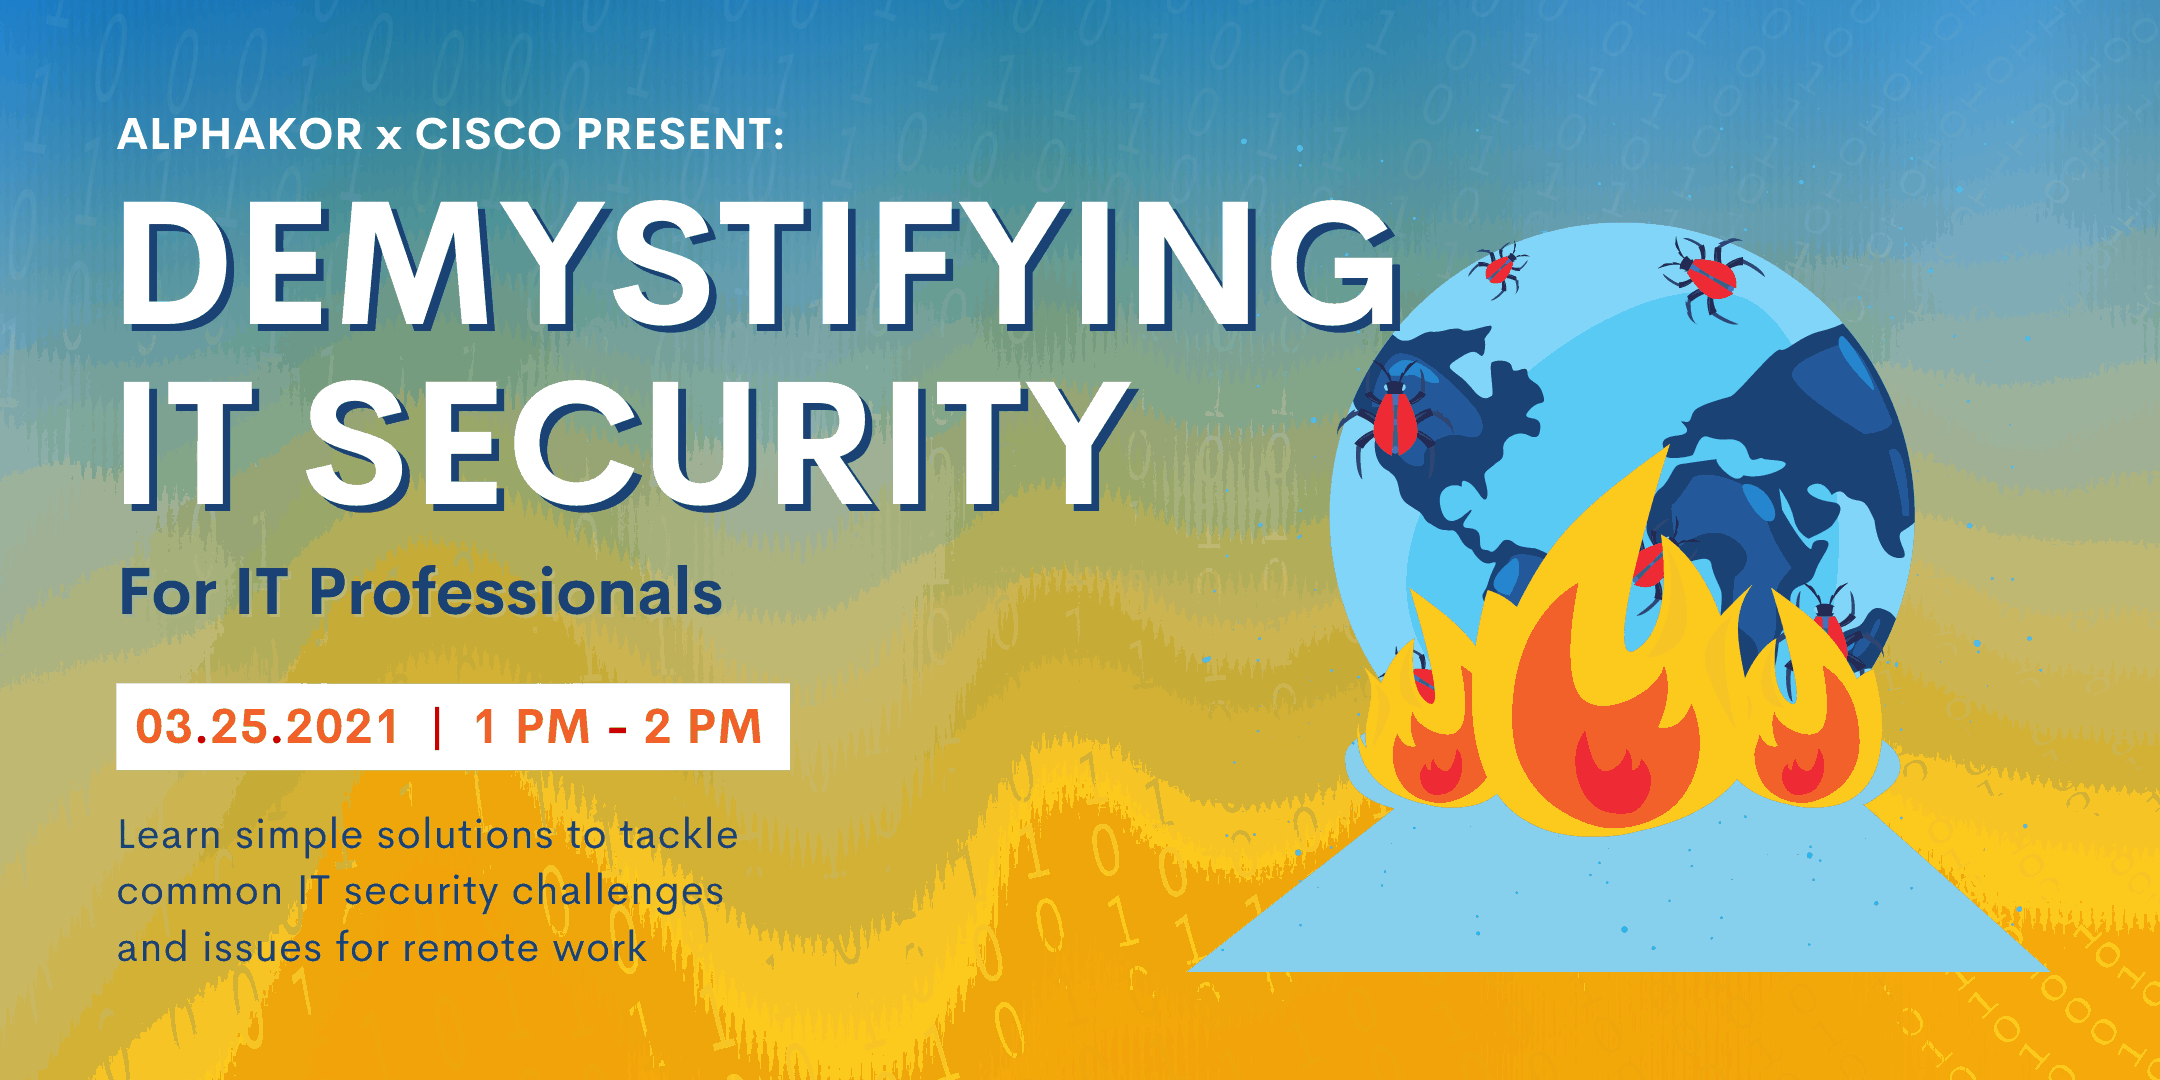 Demystifying IT Security for IT Professionals